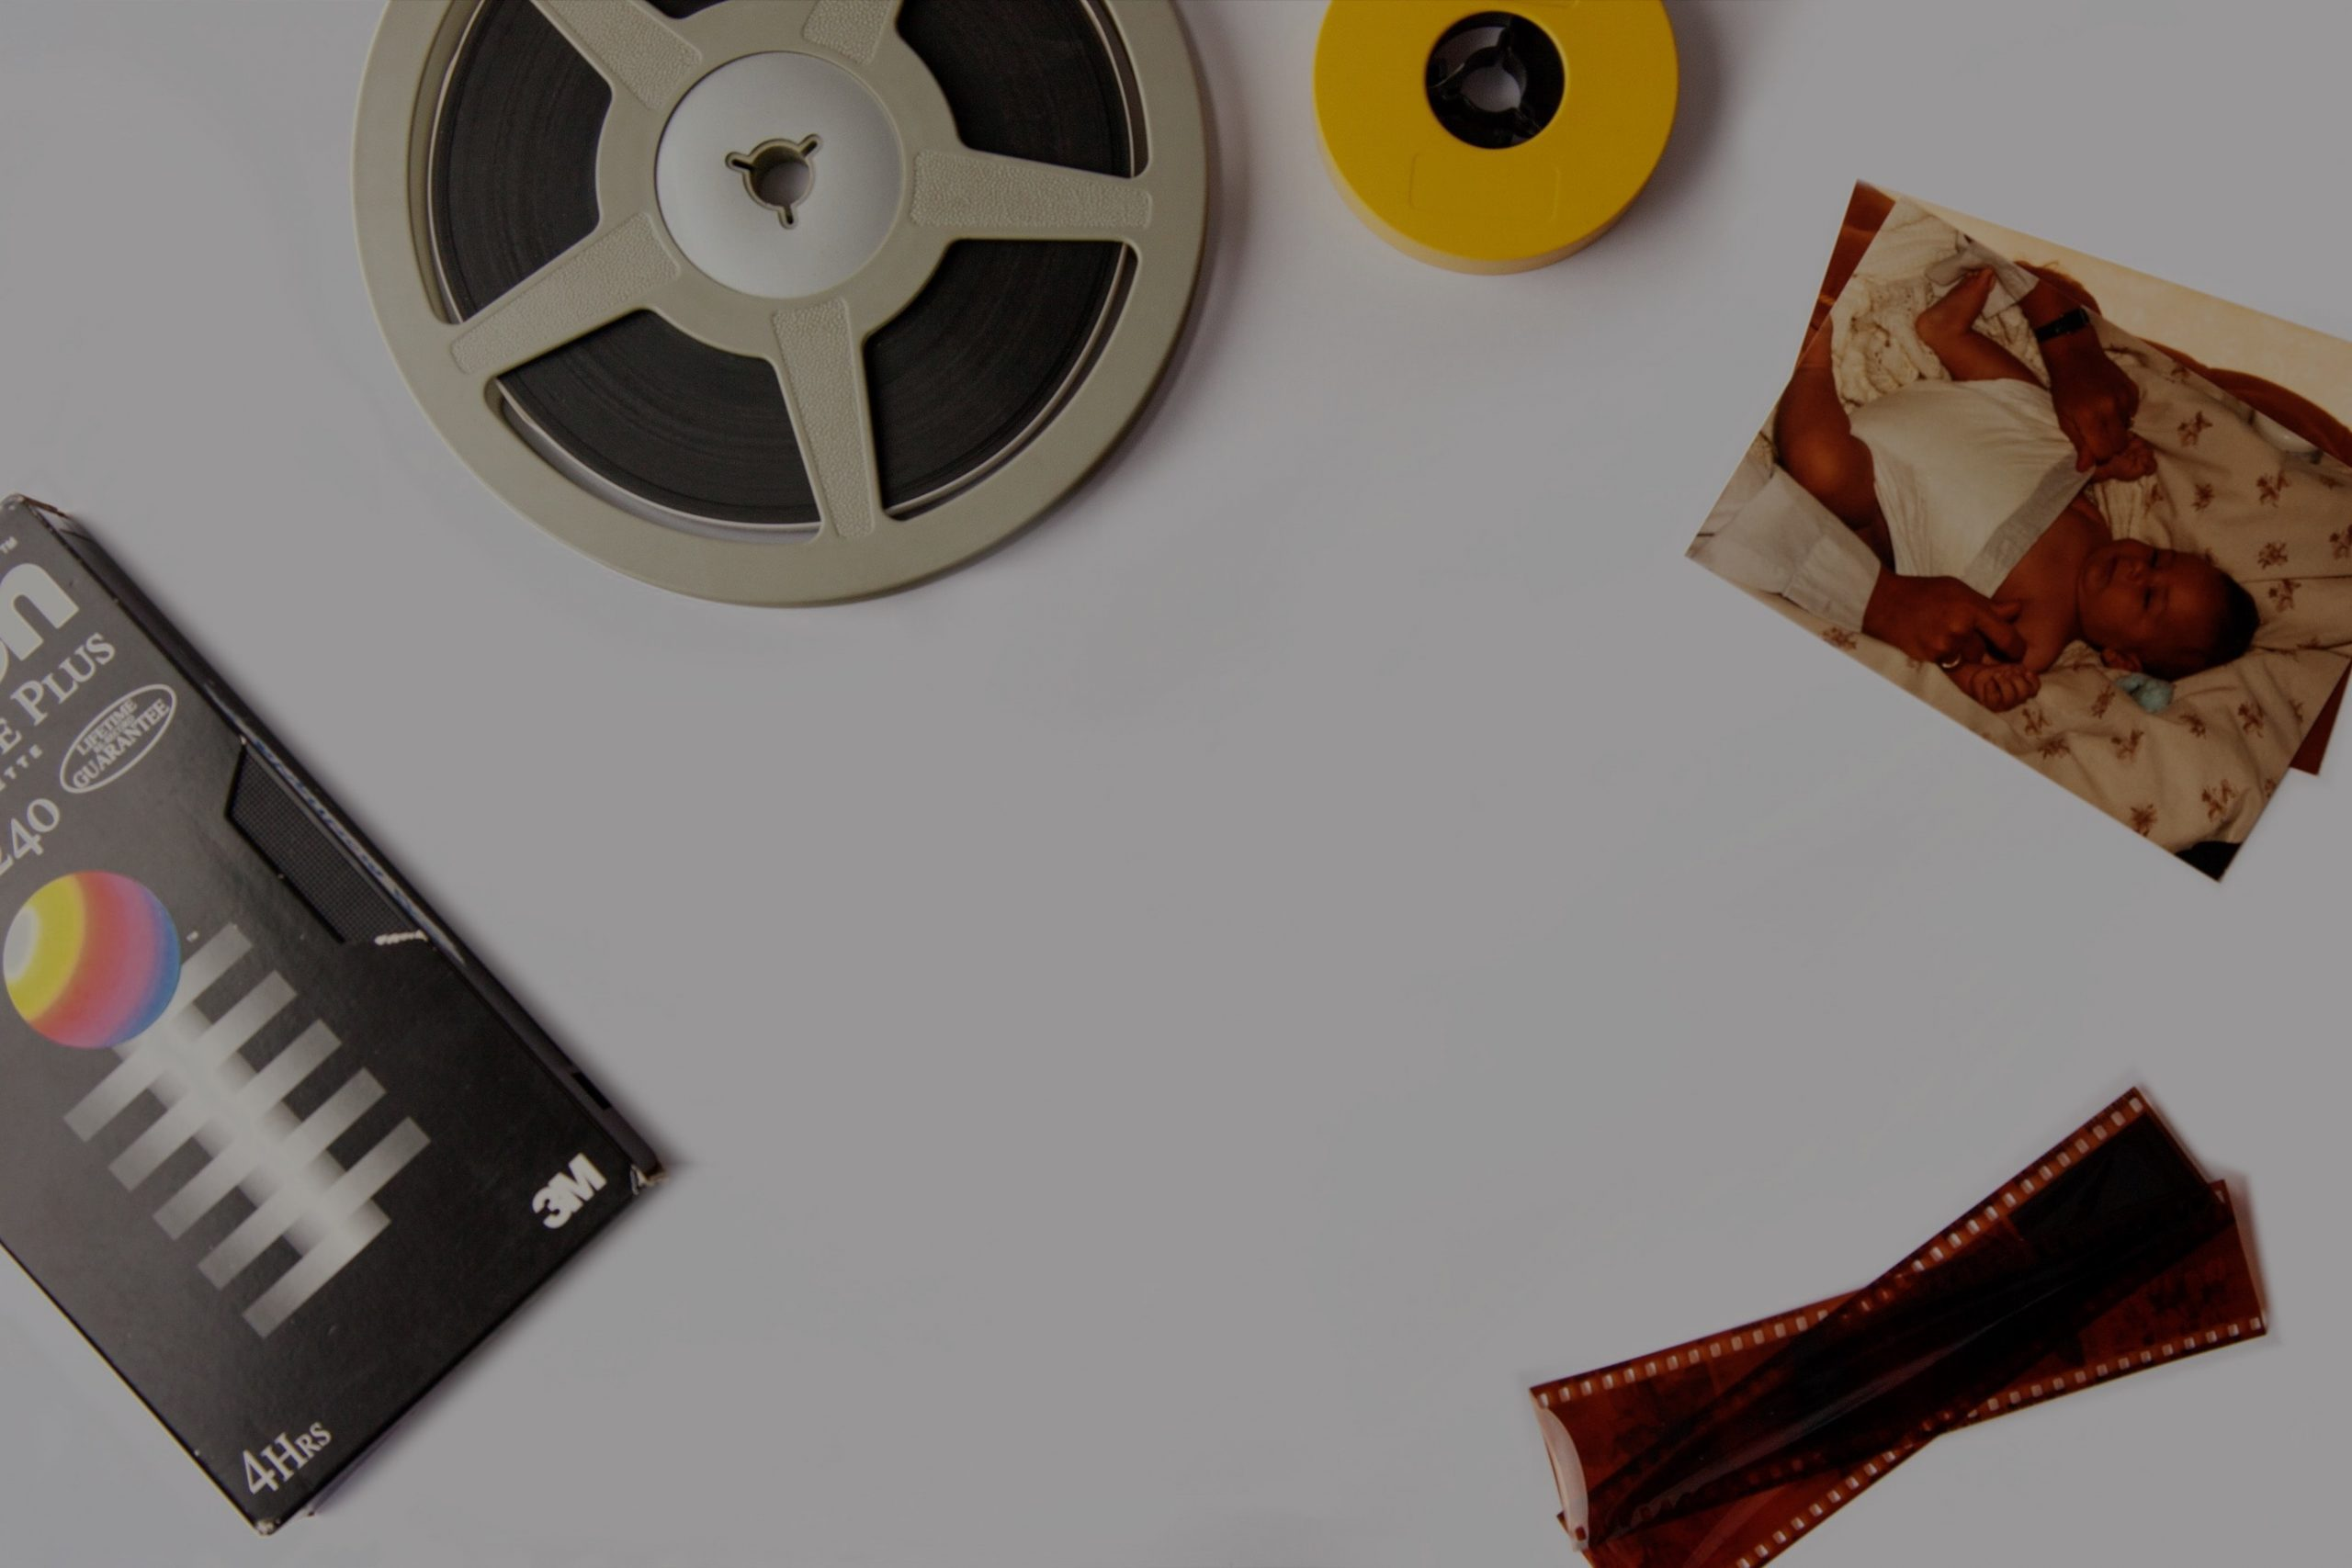 VHS tape, cinefilm and an old family photo